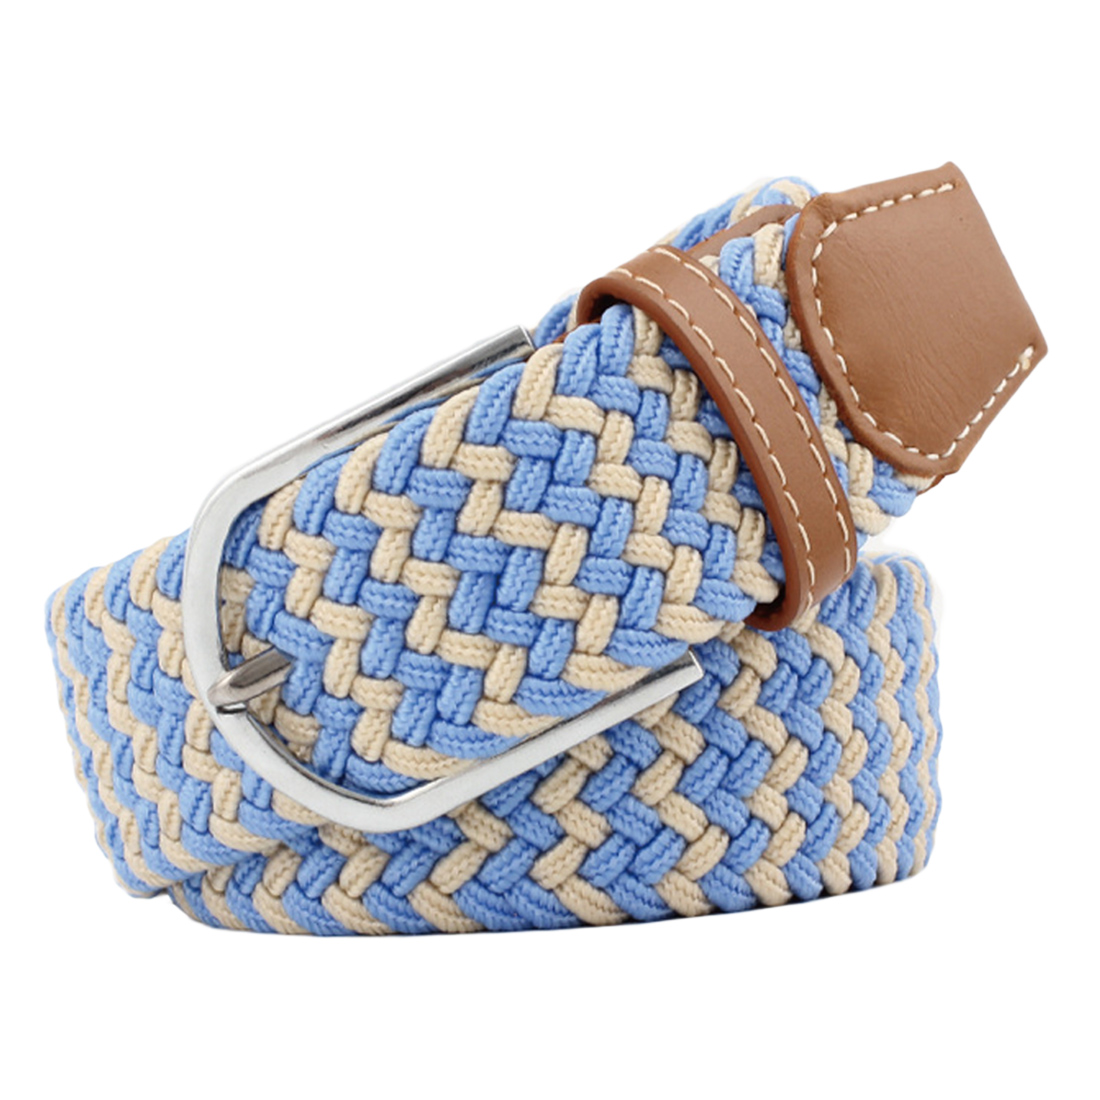 Women Belt Elastic Fabric Braided Belts for Male & Female Candy Colors New Style Belt Accessories Waist Belts